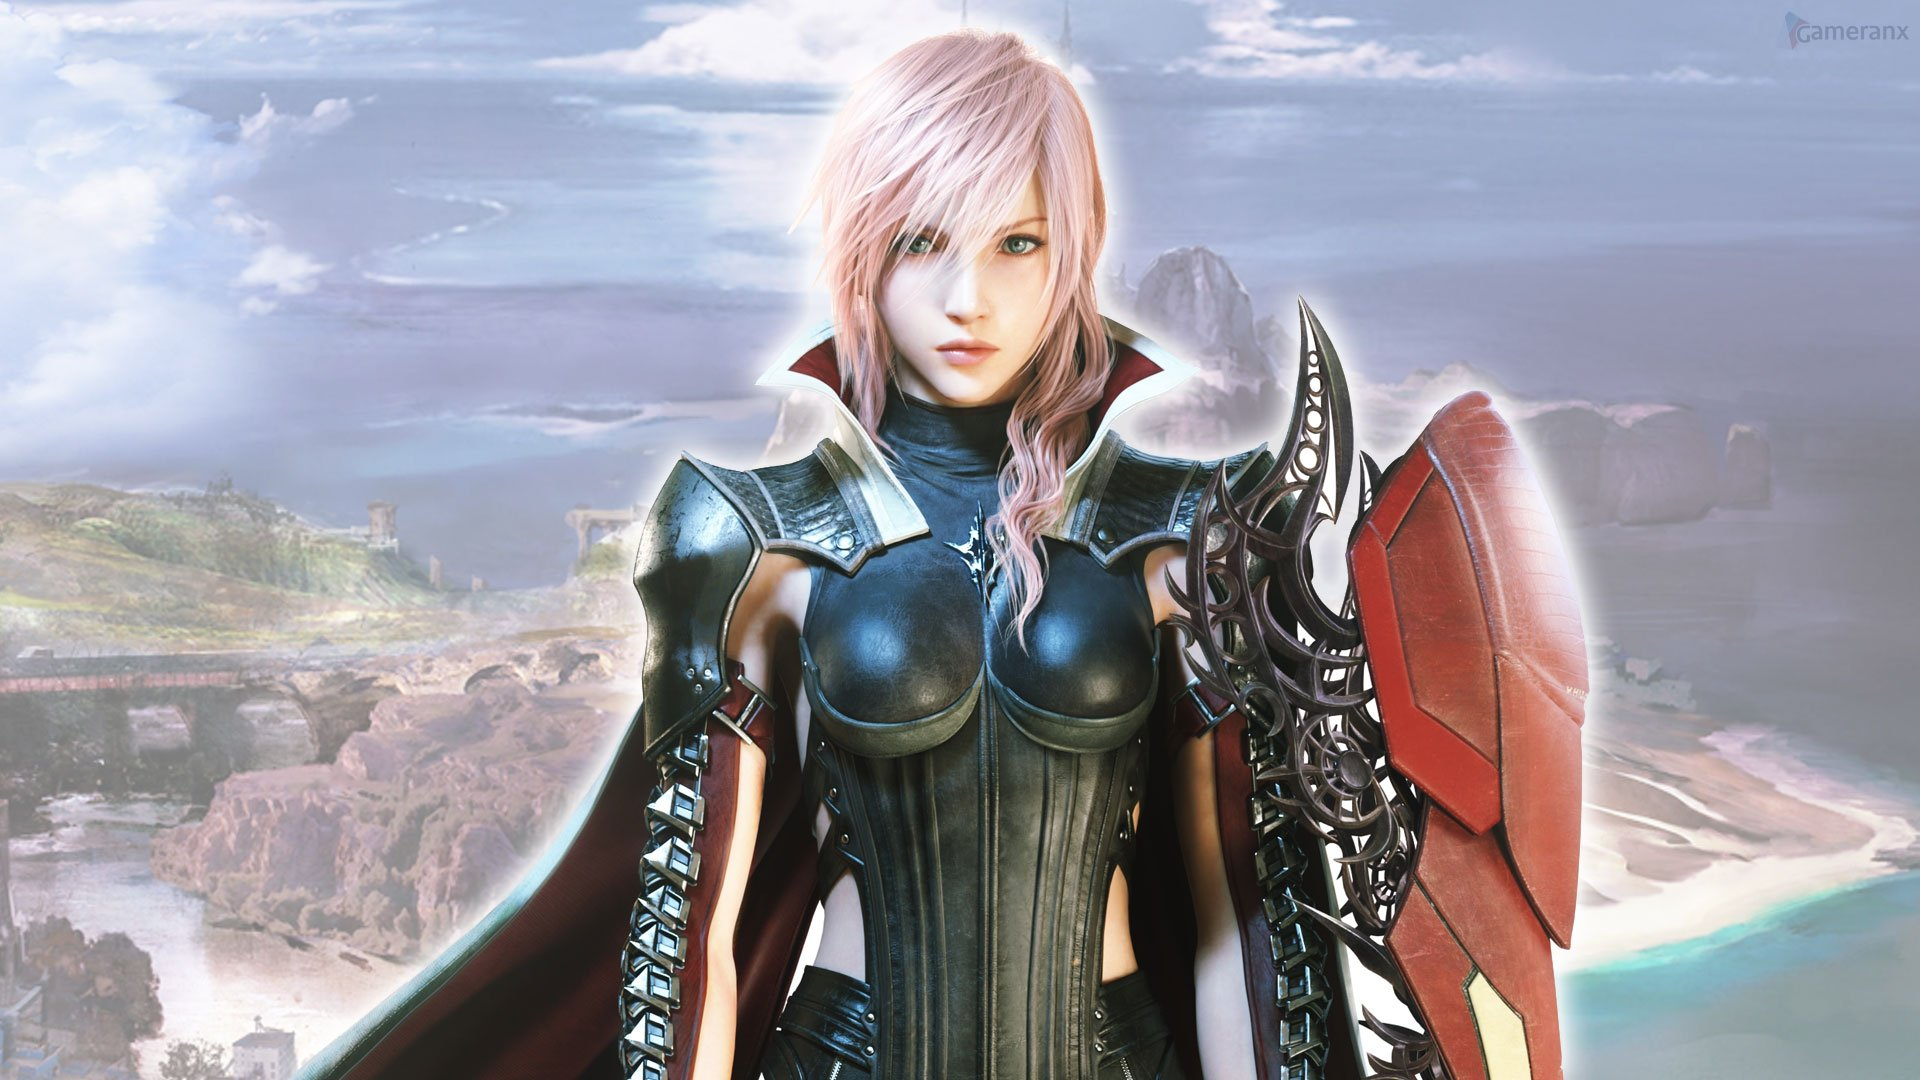 Lightning Returns Final Fantasy XIII Wallpapers HD Wallpapers 1920x1080